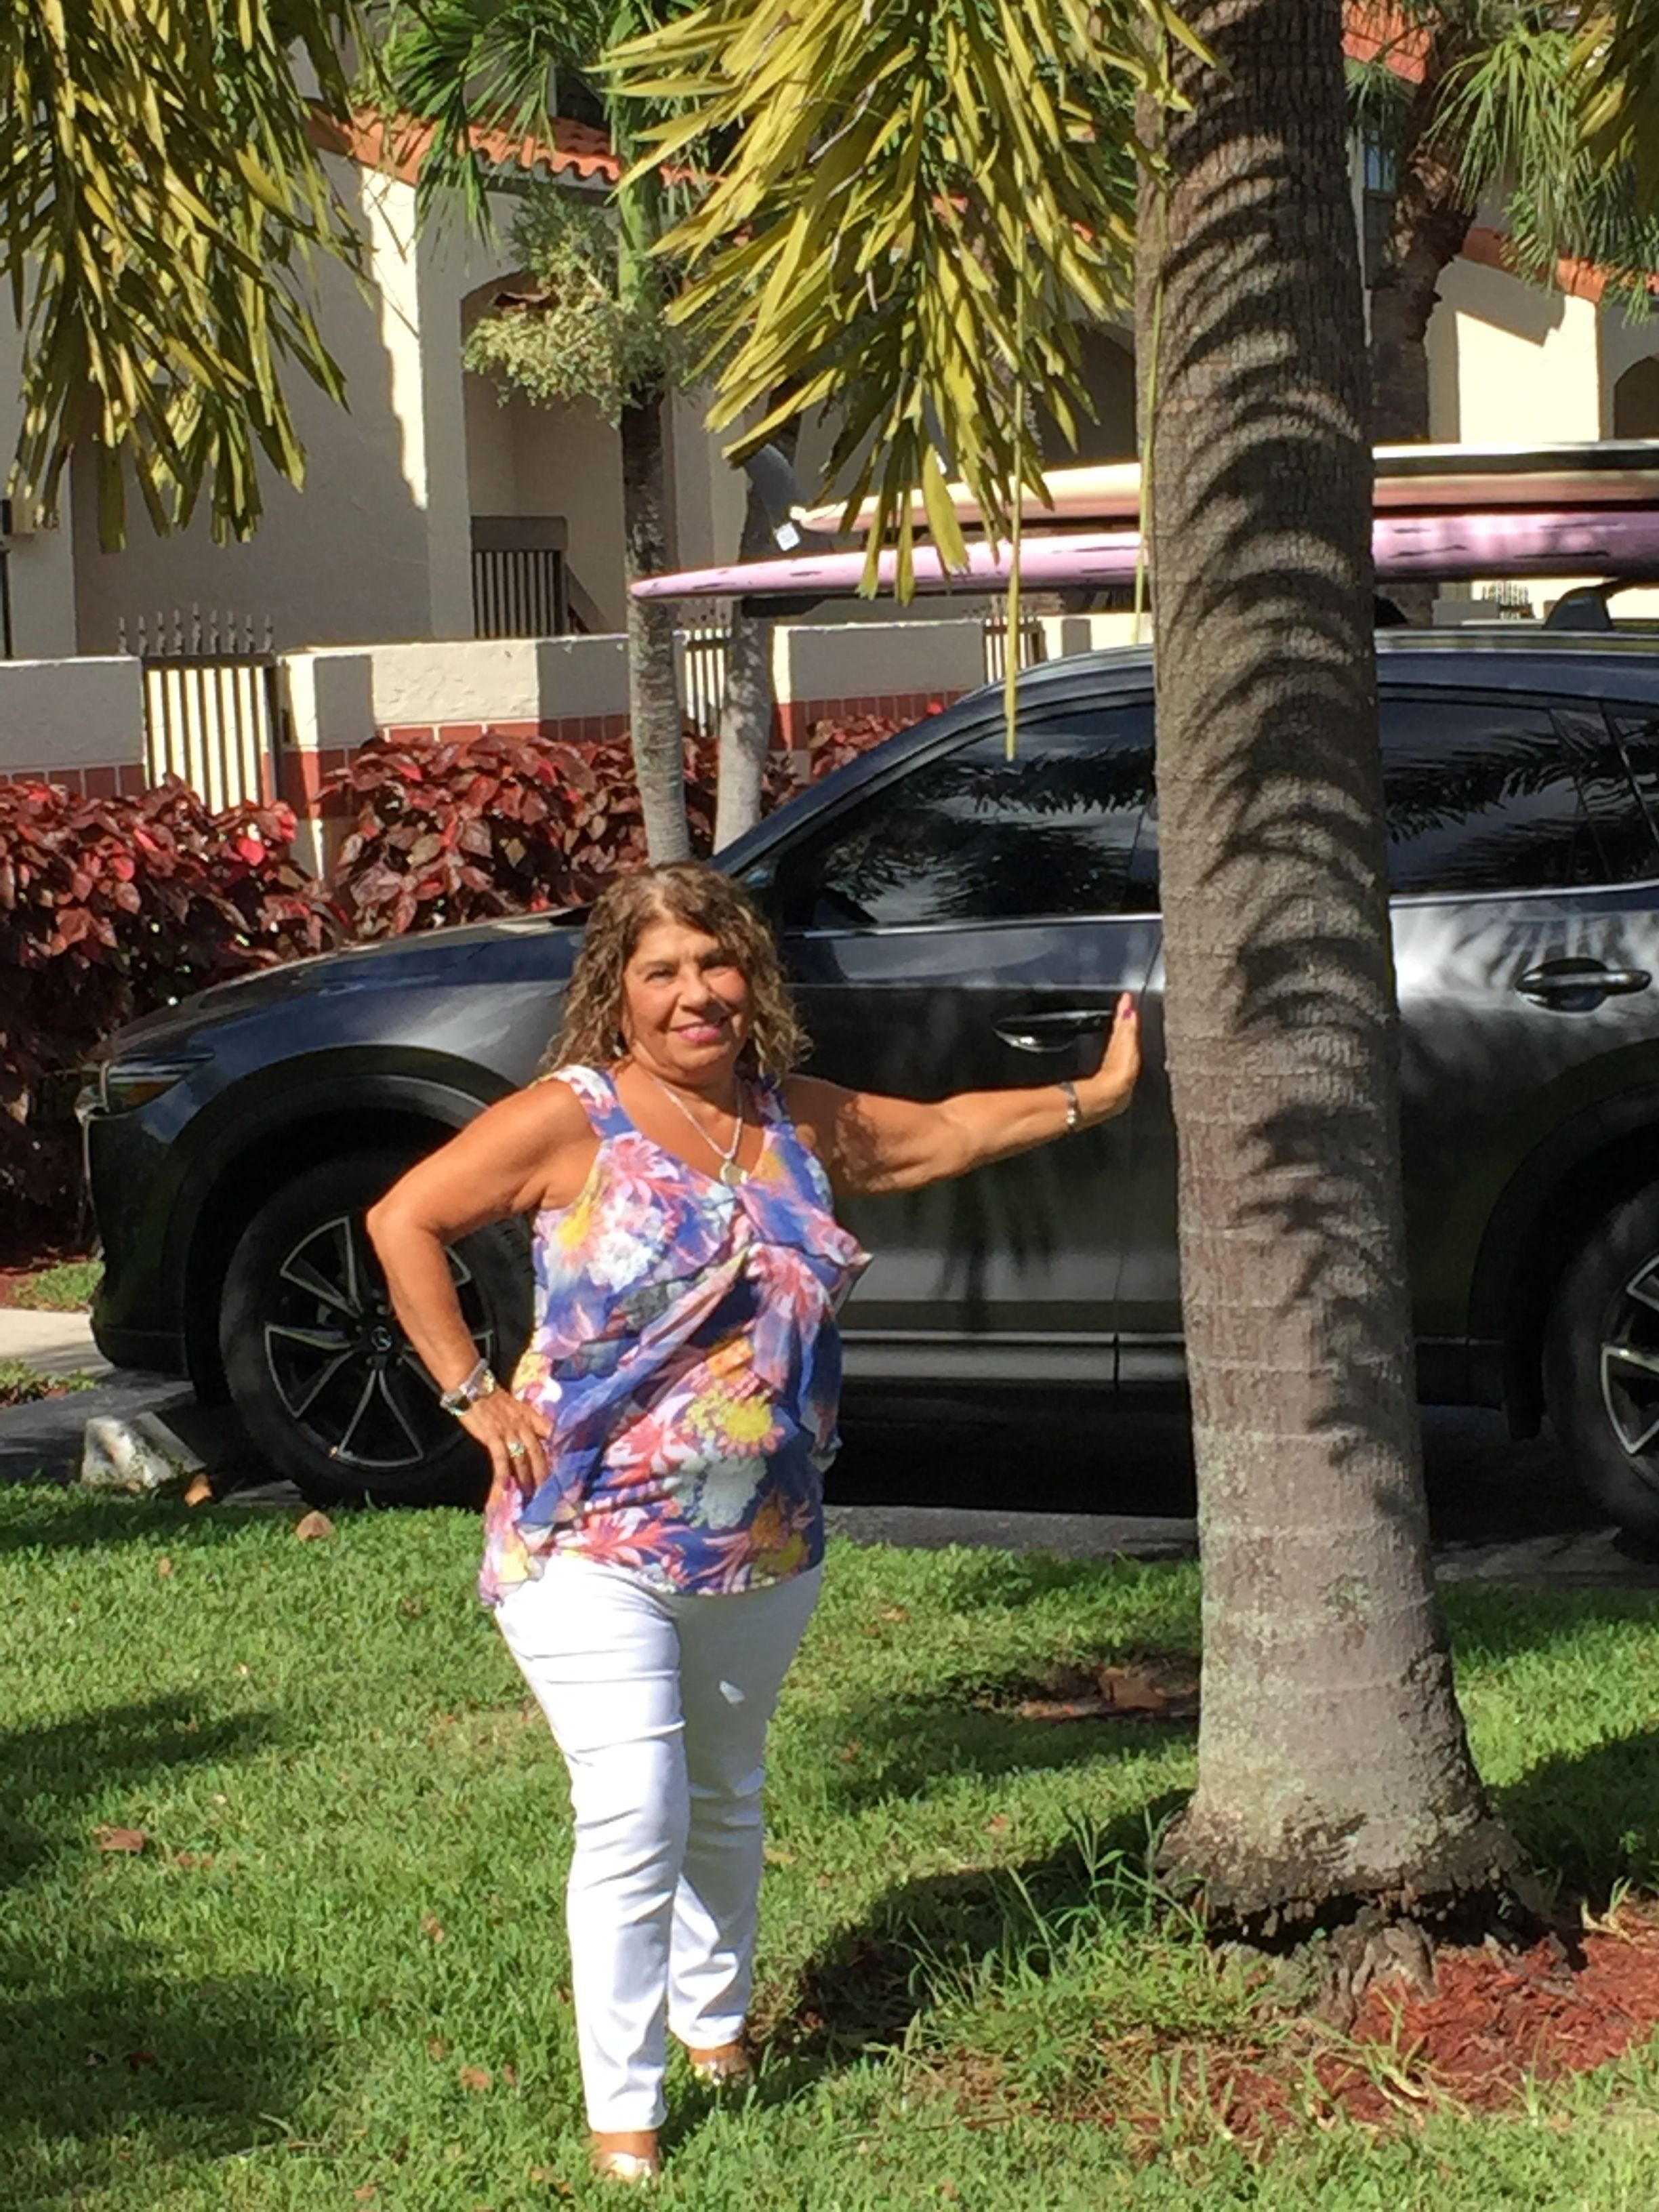 Armenian dating couples in boca raton fl